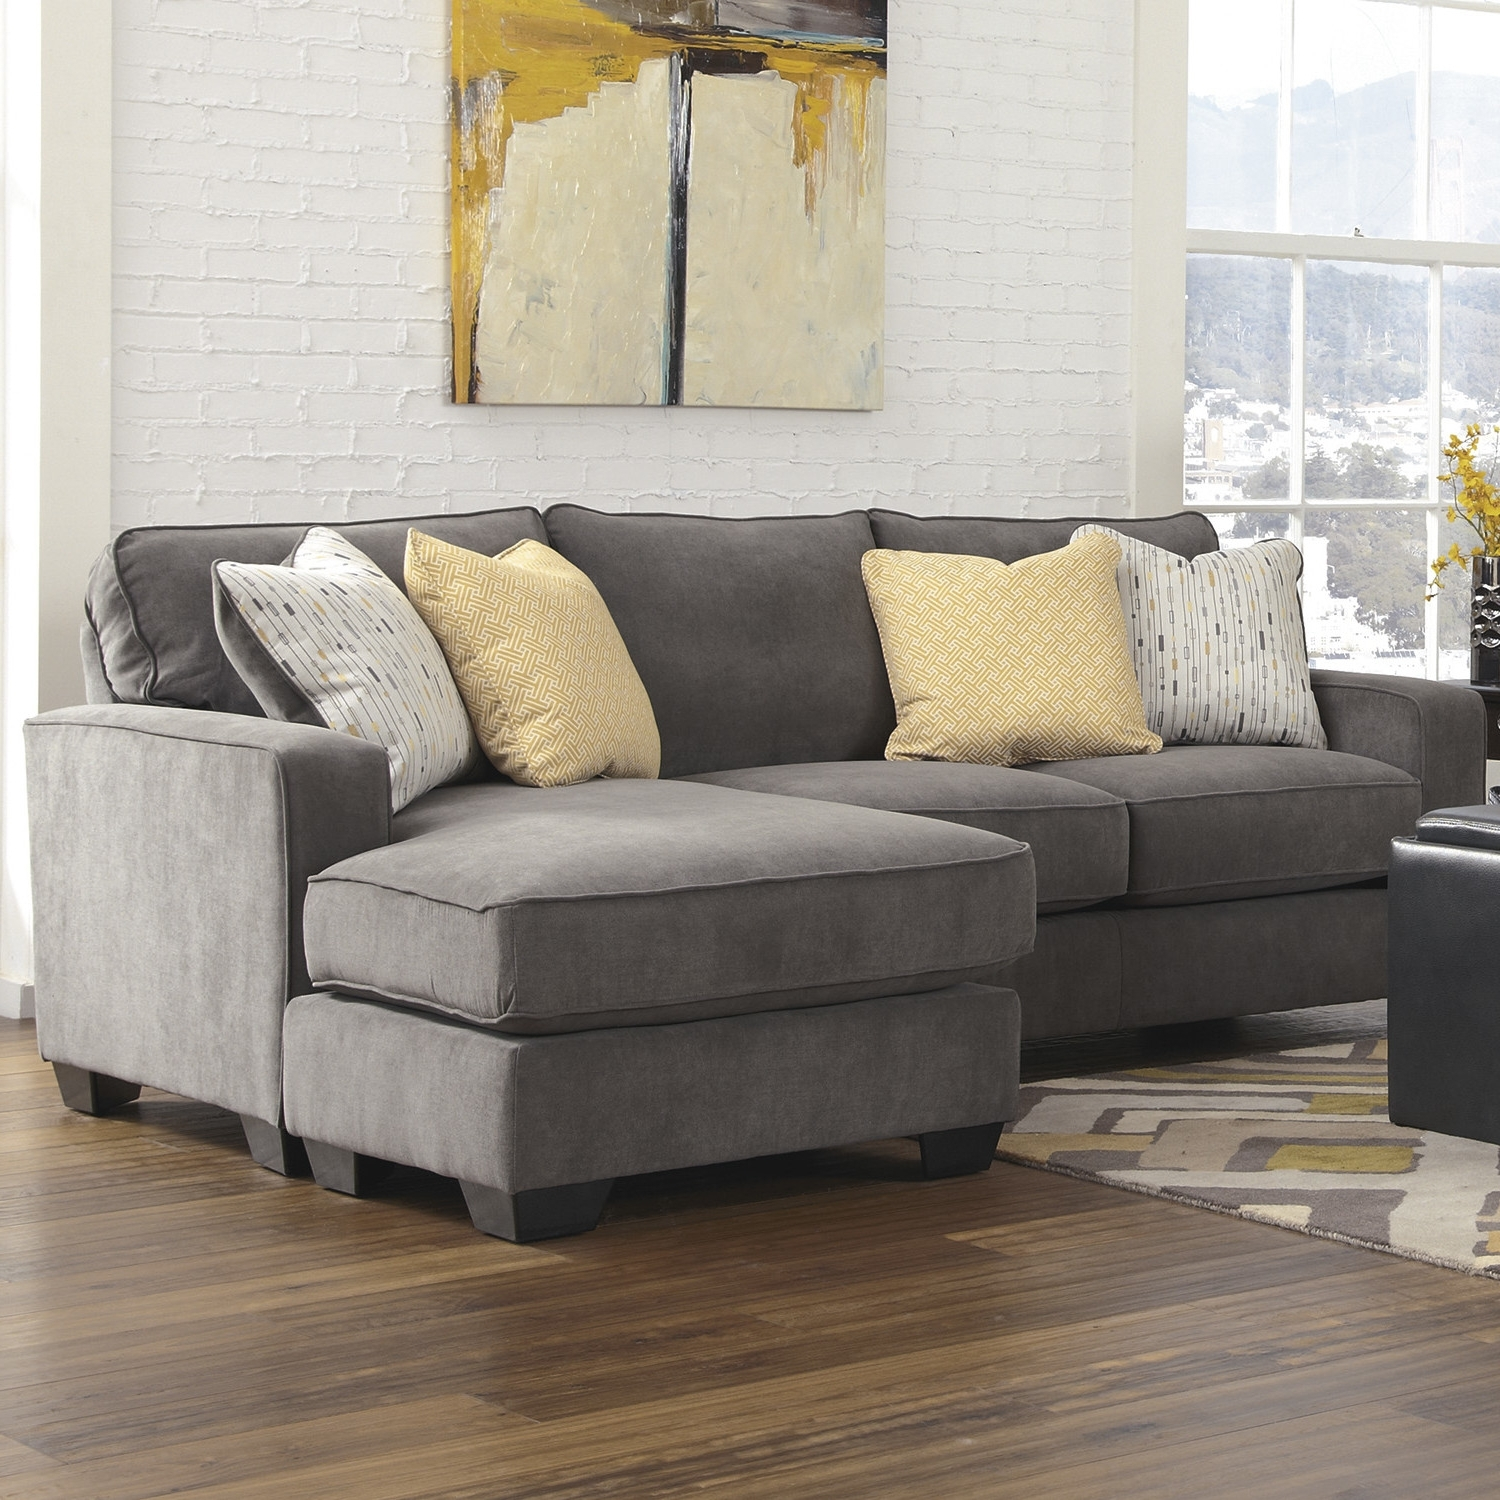 Kessel Reversible Chaise Sectionalmercer41 Review – Furnitures Inside Well Liked Reversible Chaise Sectional Sofas (View 5 of 15)